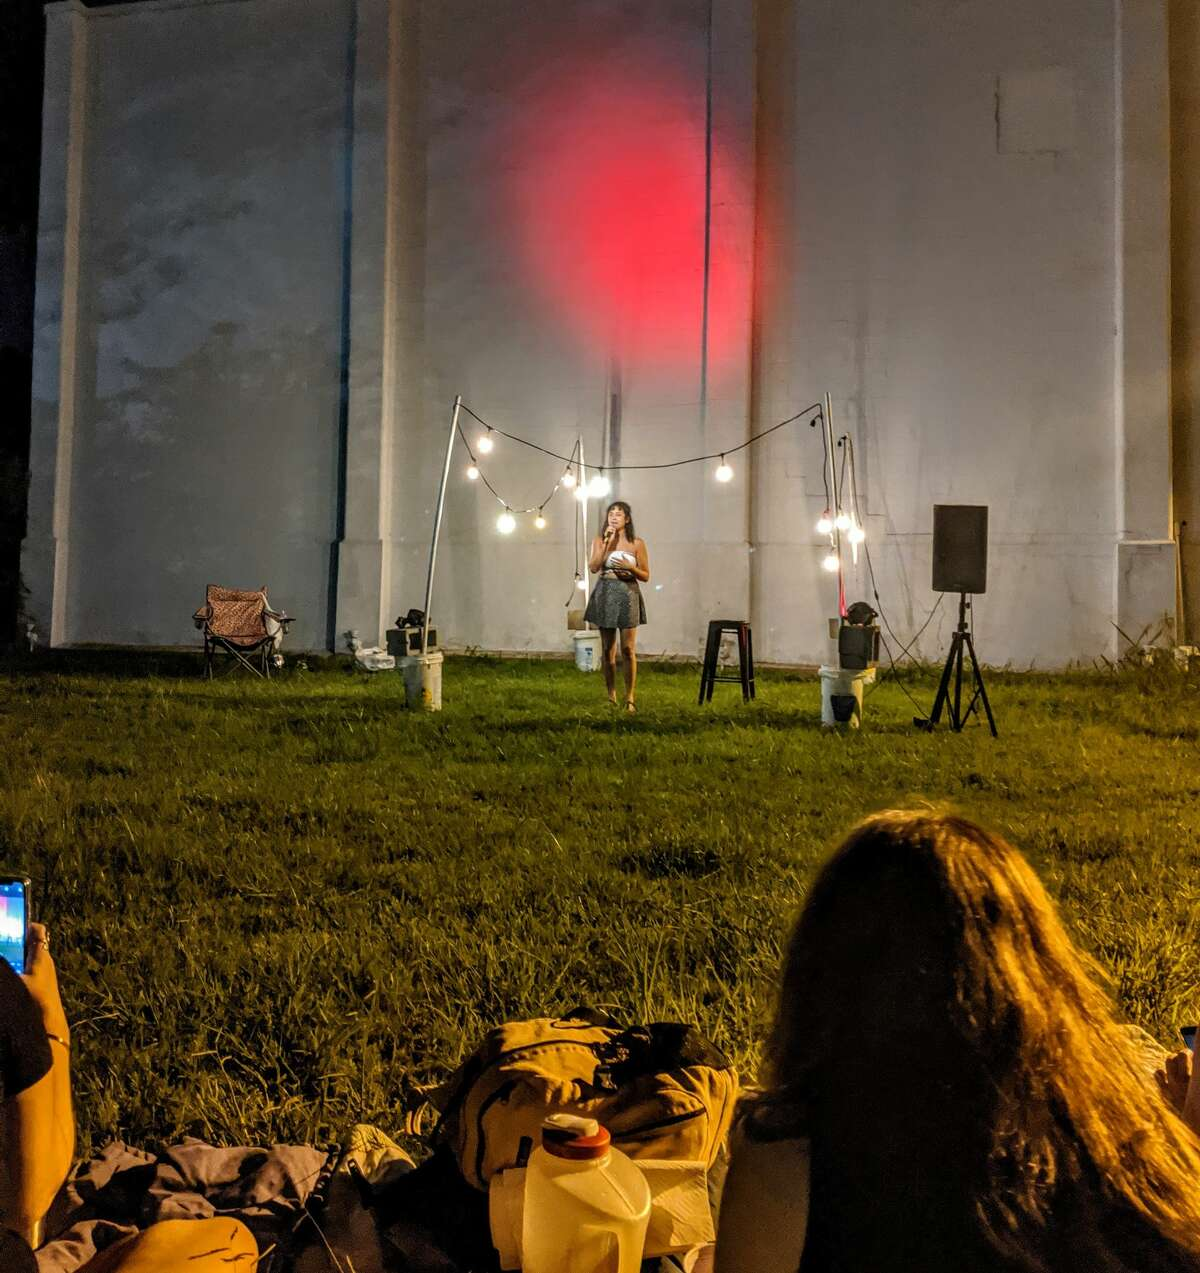 Audiences enjoy standup comedy in a comedy garden organized by 5th Wave Productions to allow safe, in-person entertainment amid the pandemic.